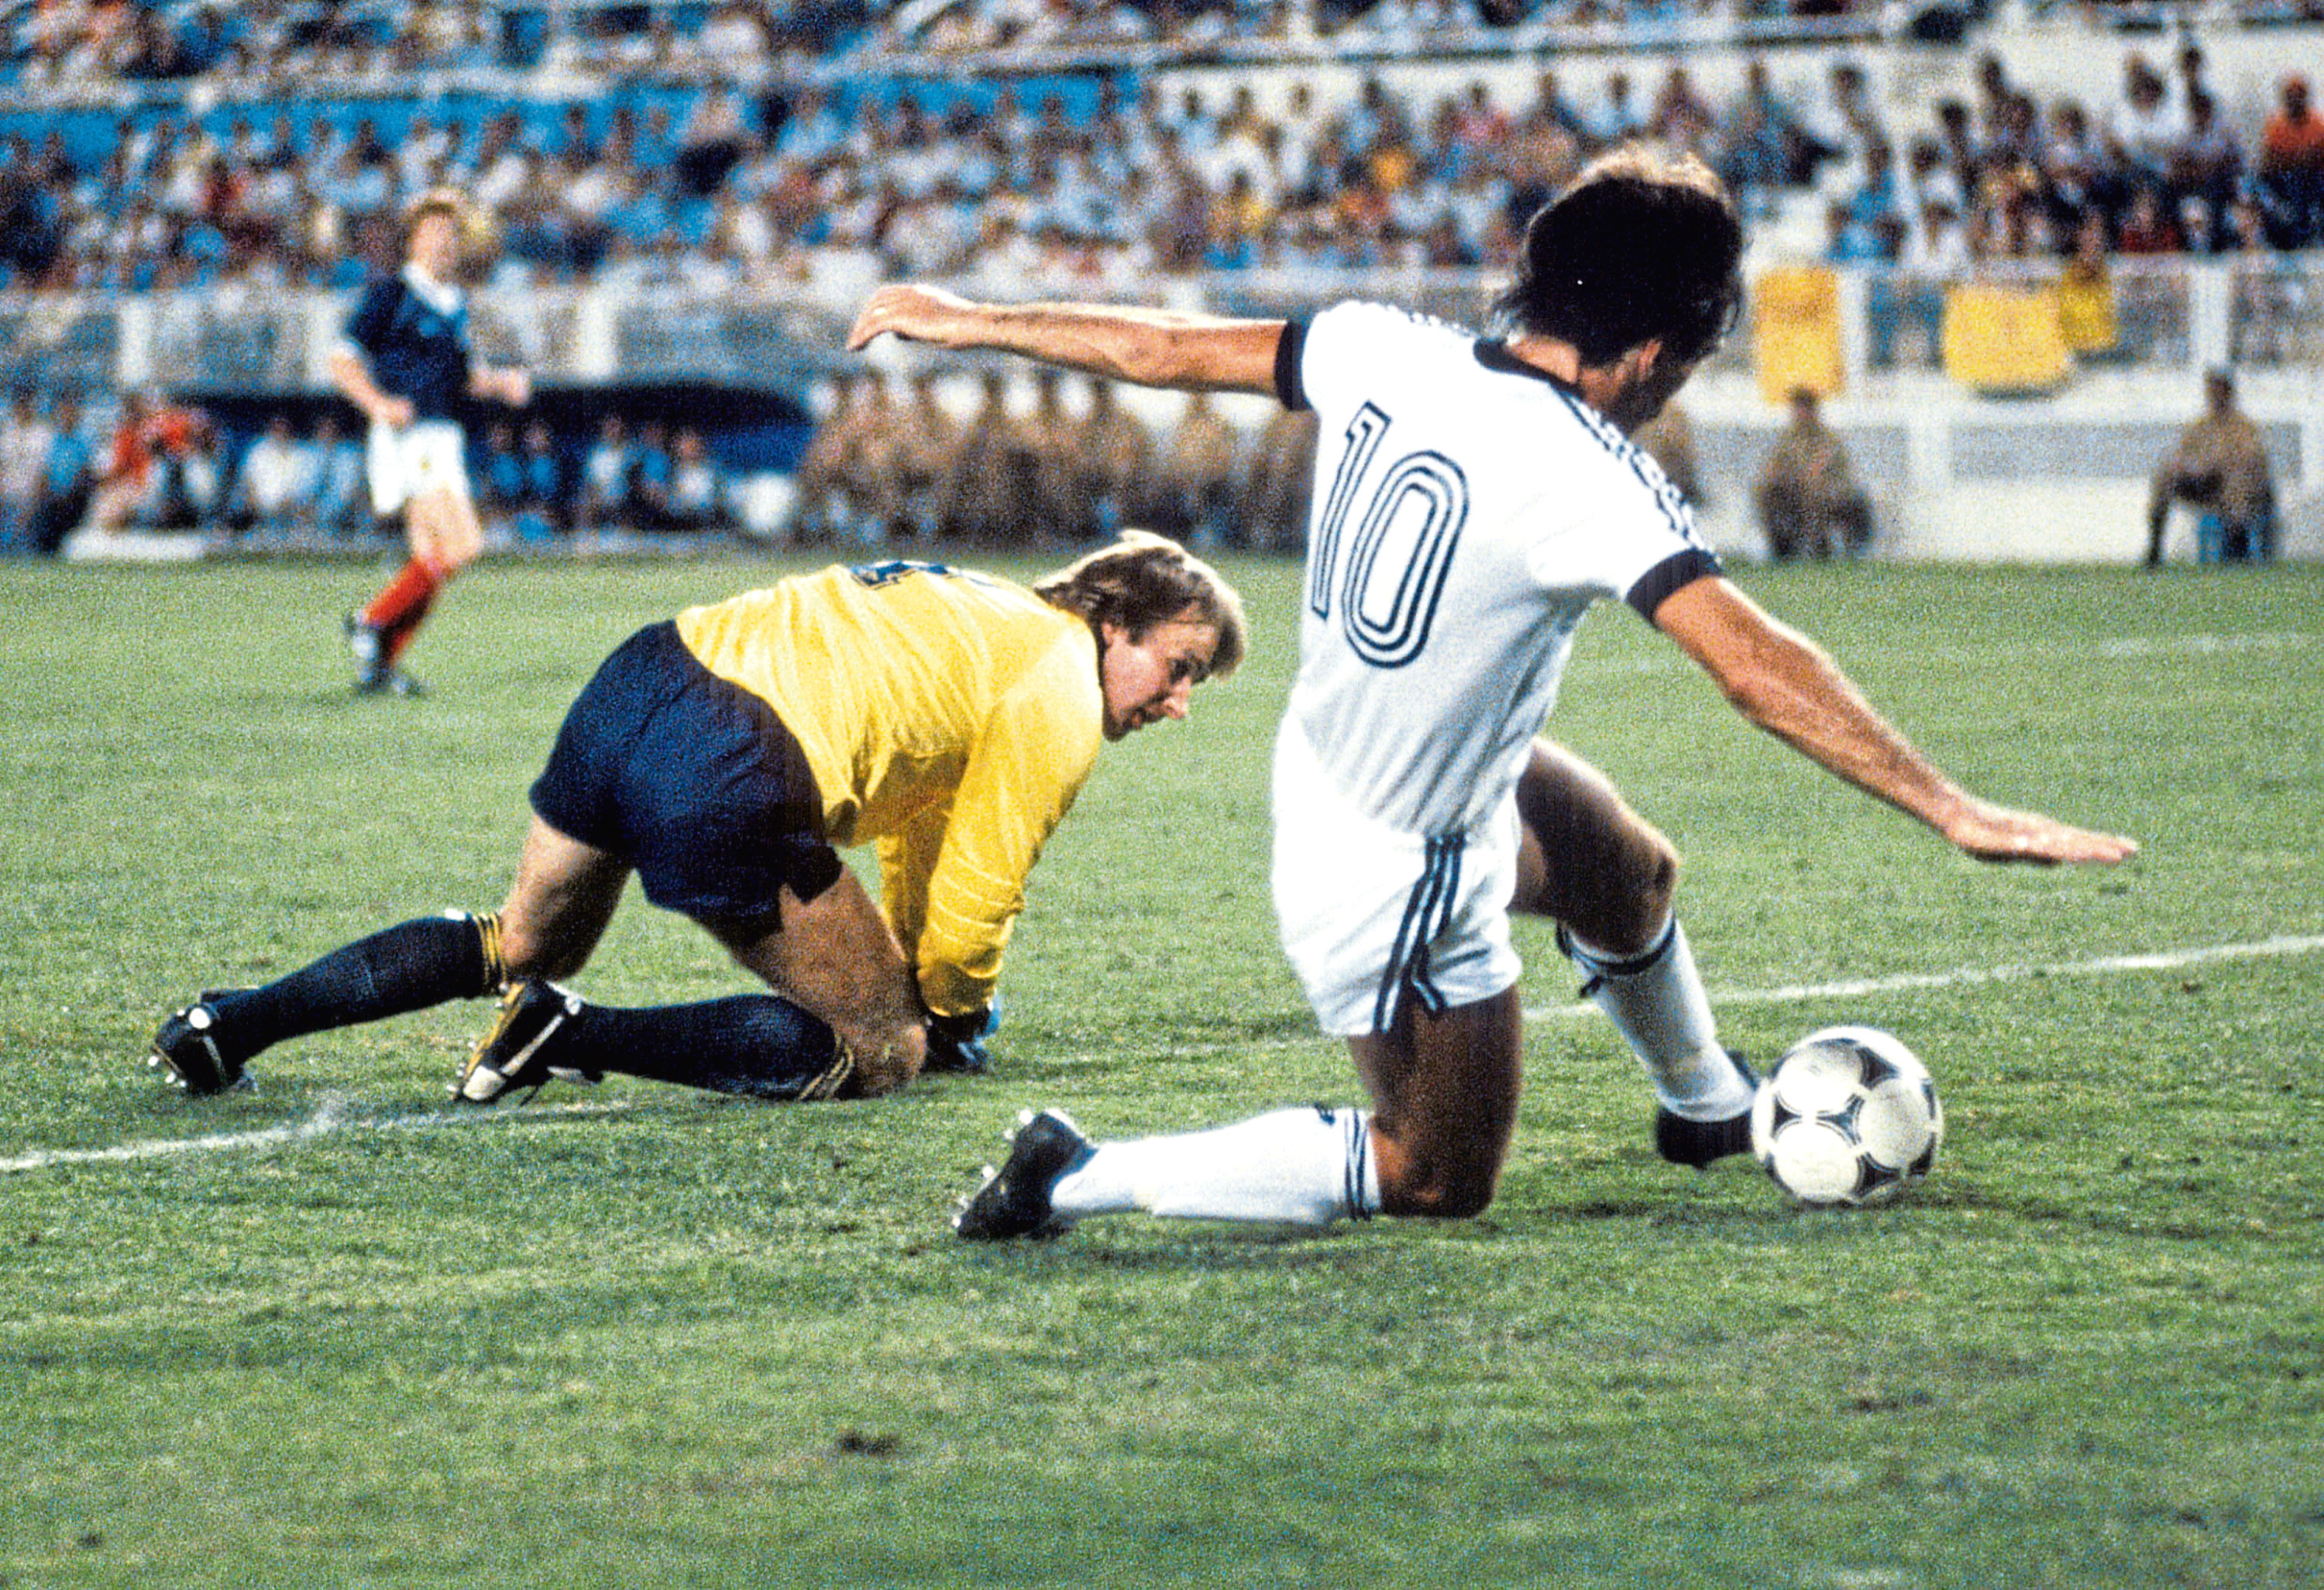 Scotland goalkeeper Alan Rough (left) looks on as New Zealand's Steve Sumner scoops the ball into the goal